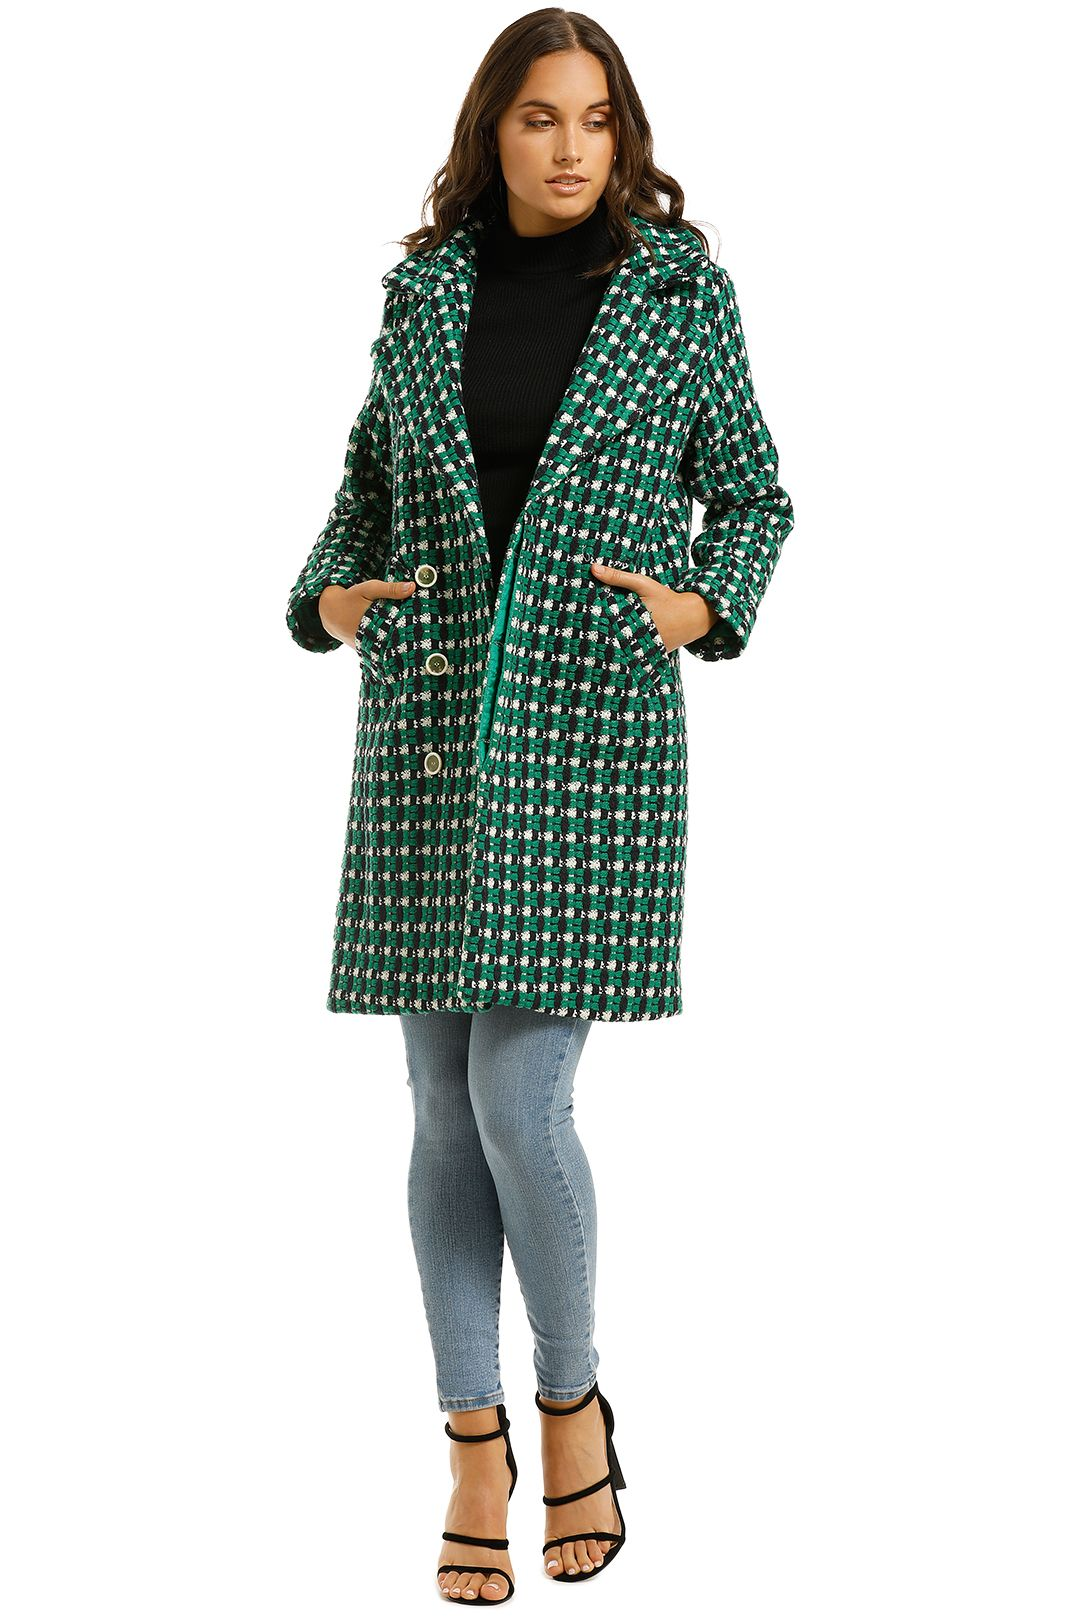 Coop-by-Trelise-Cooper-Rock-The-Coat-Green-Front